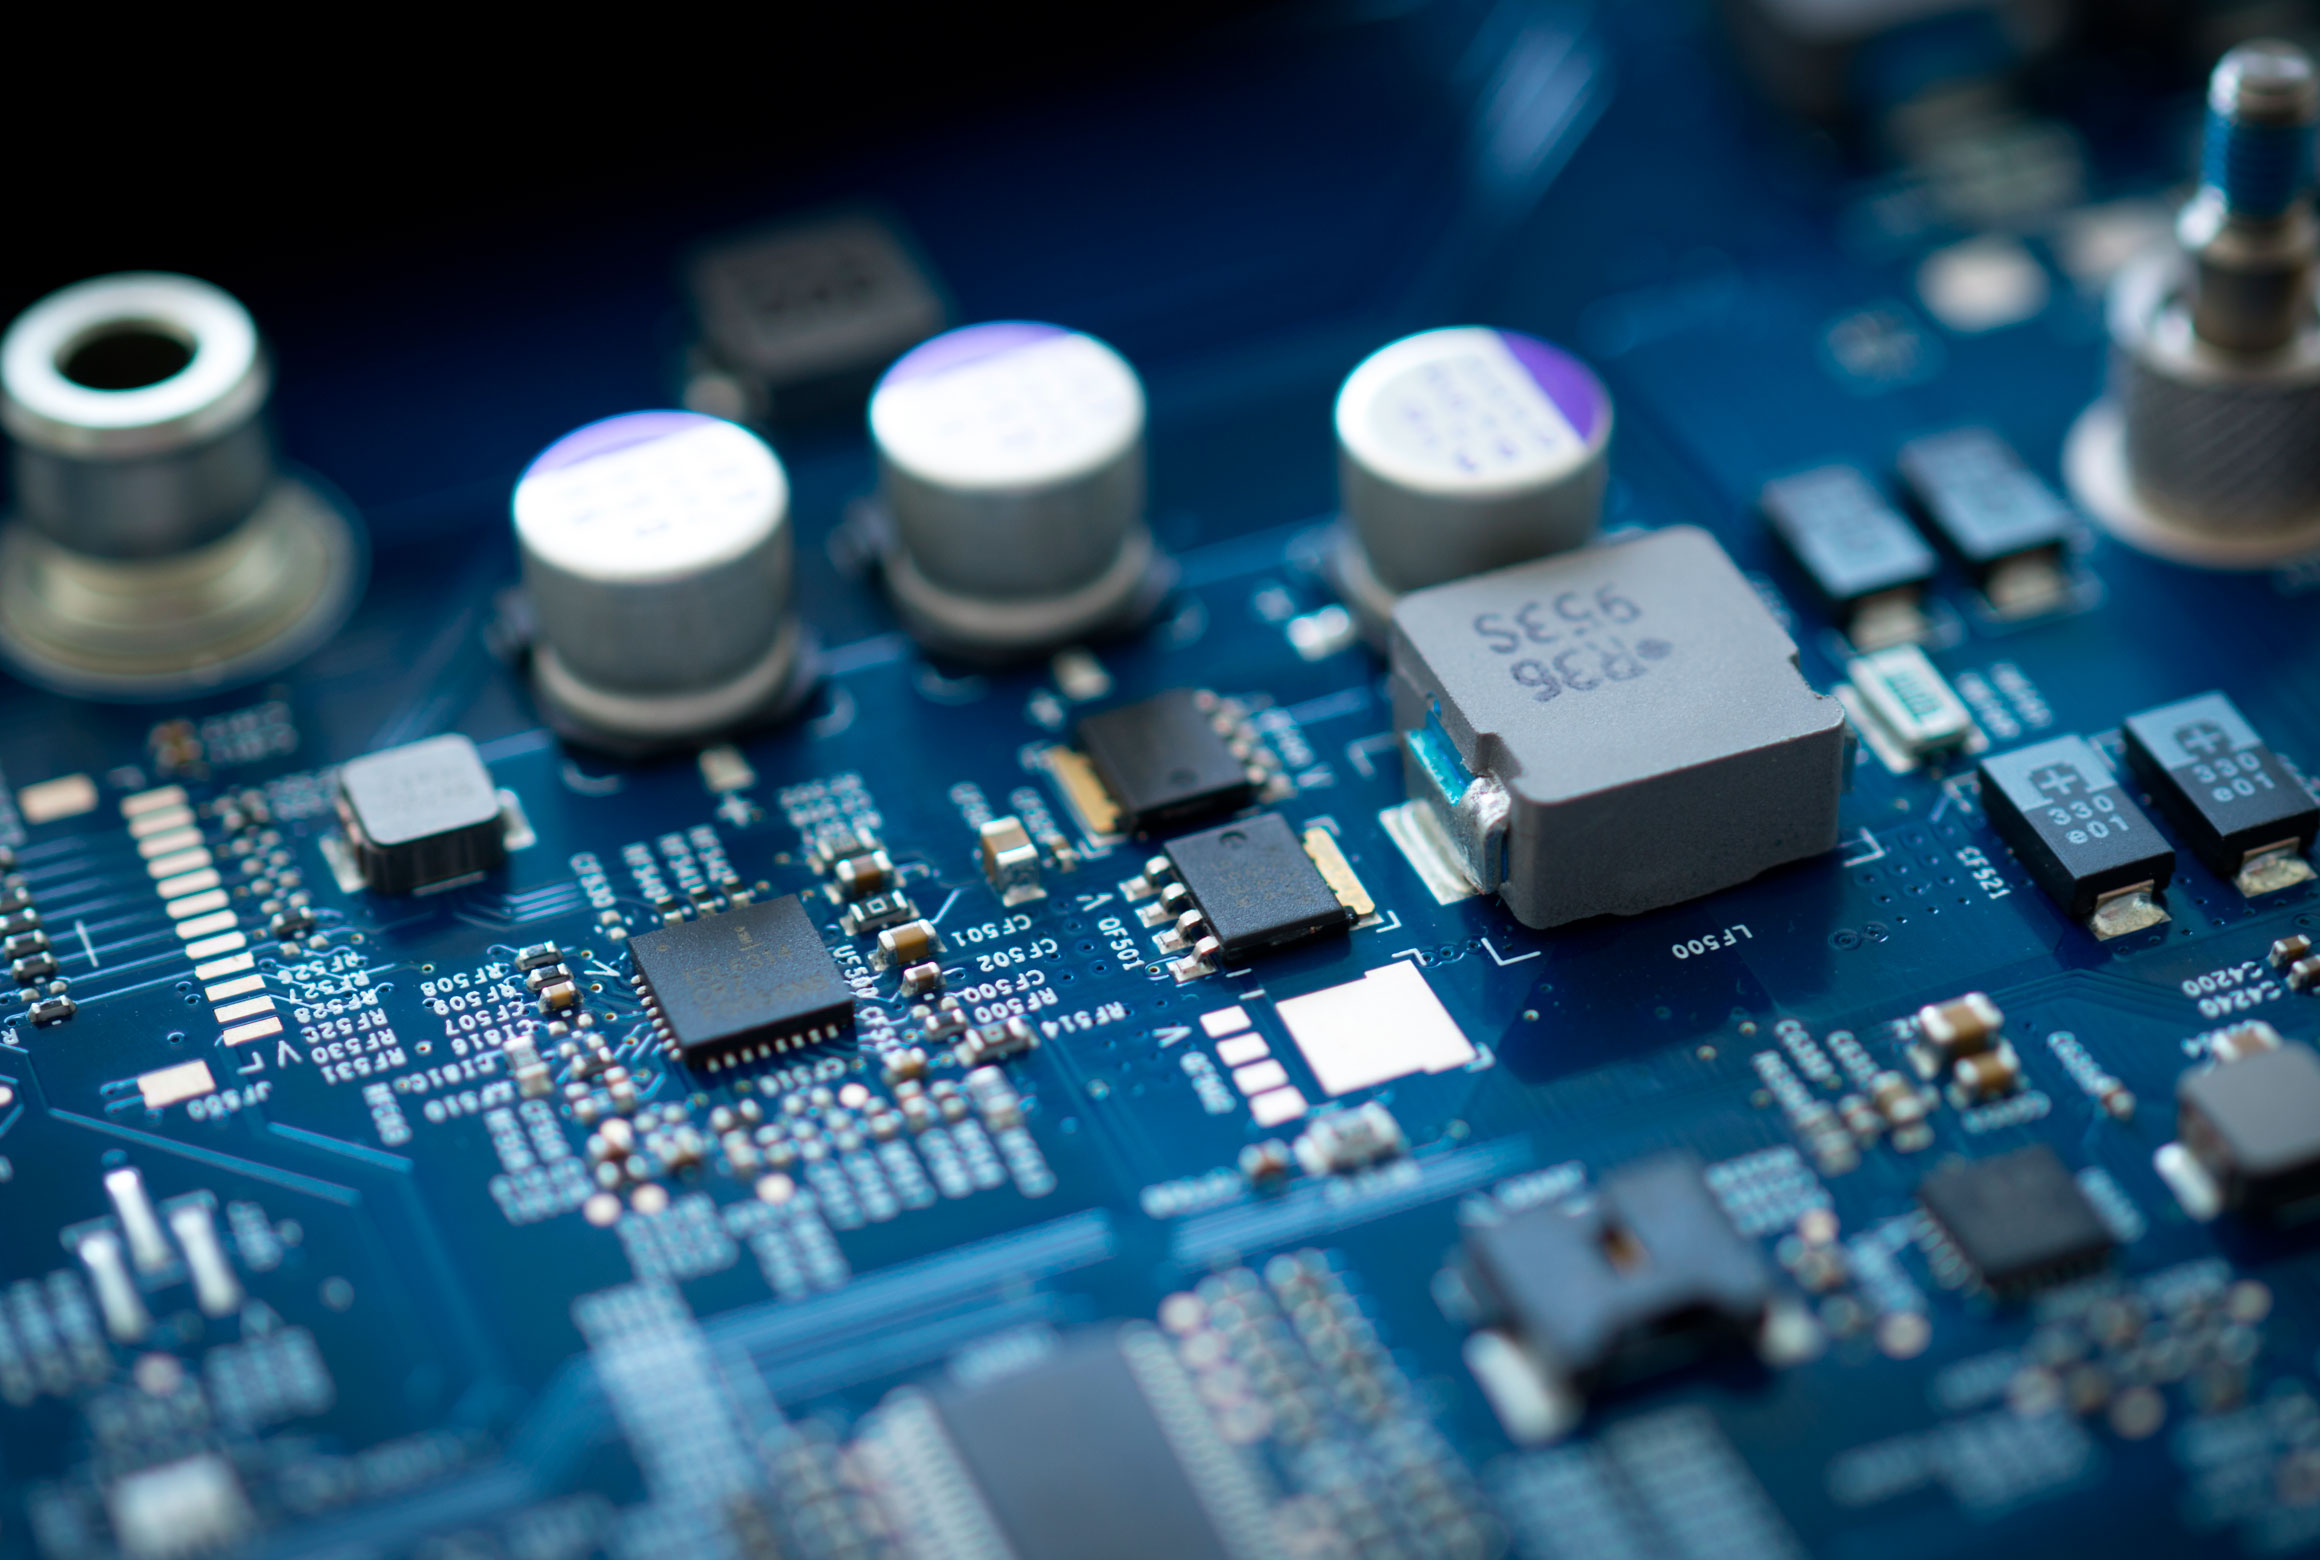 Pcb Embedded Design And Fpga Electronics Development Service Electronic Circuitboard With Components Soldered In Place Hardware